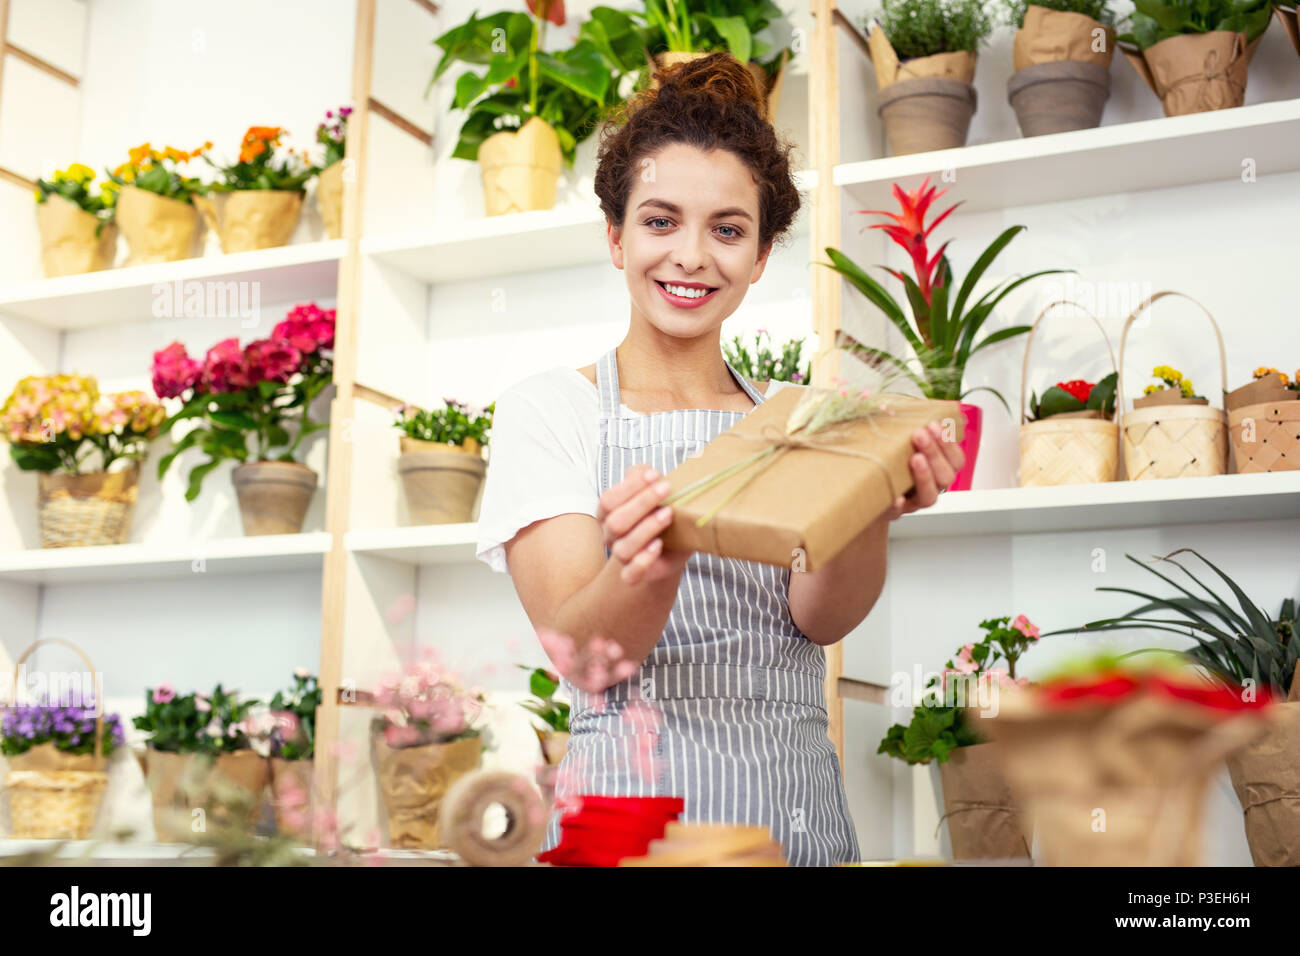 Cheerful happy woman working as a designer - Stock Image